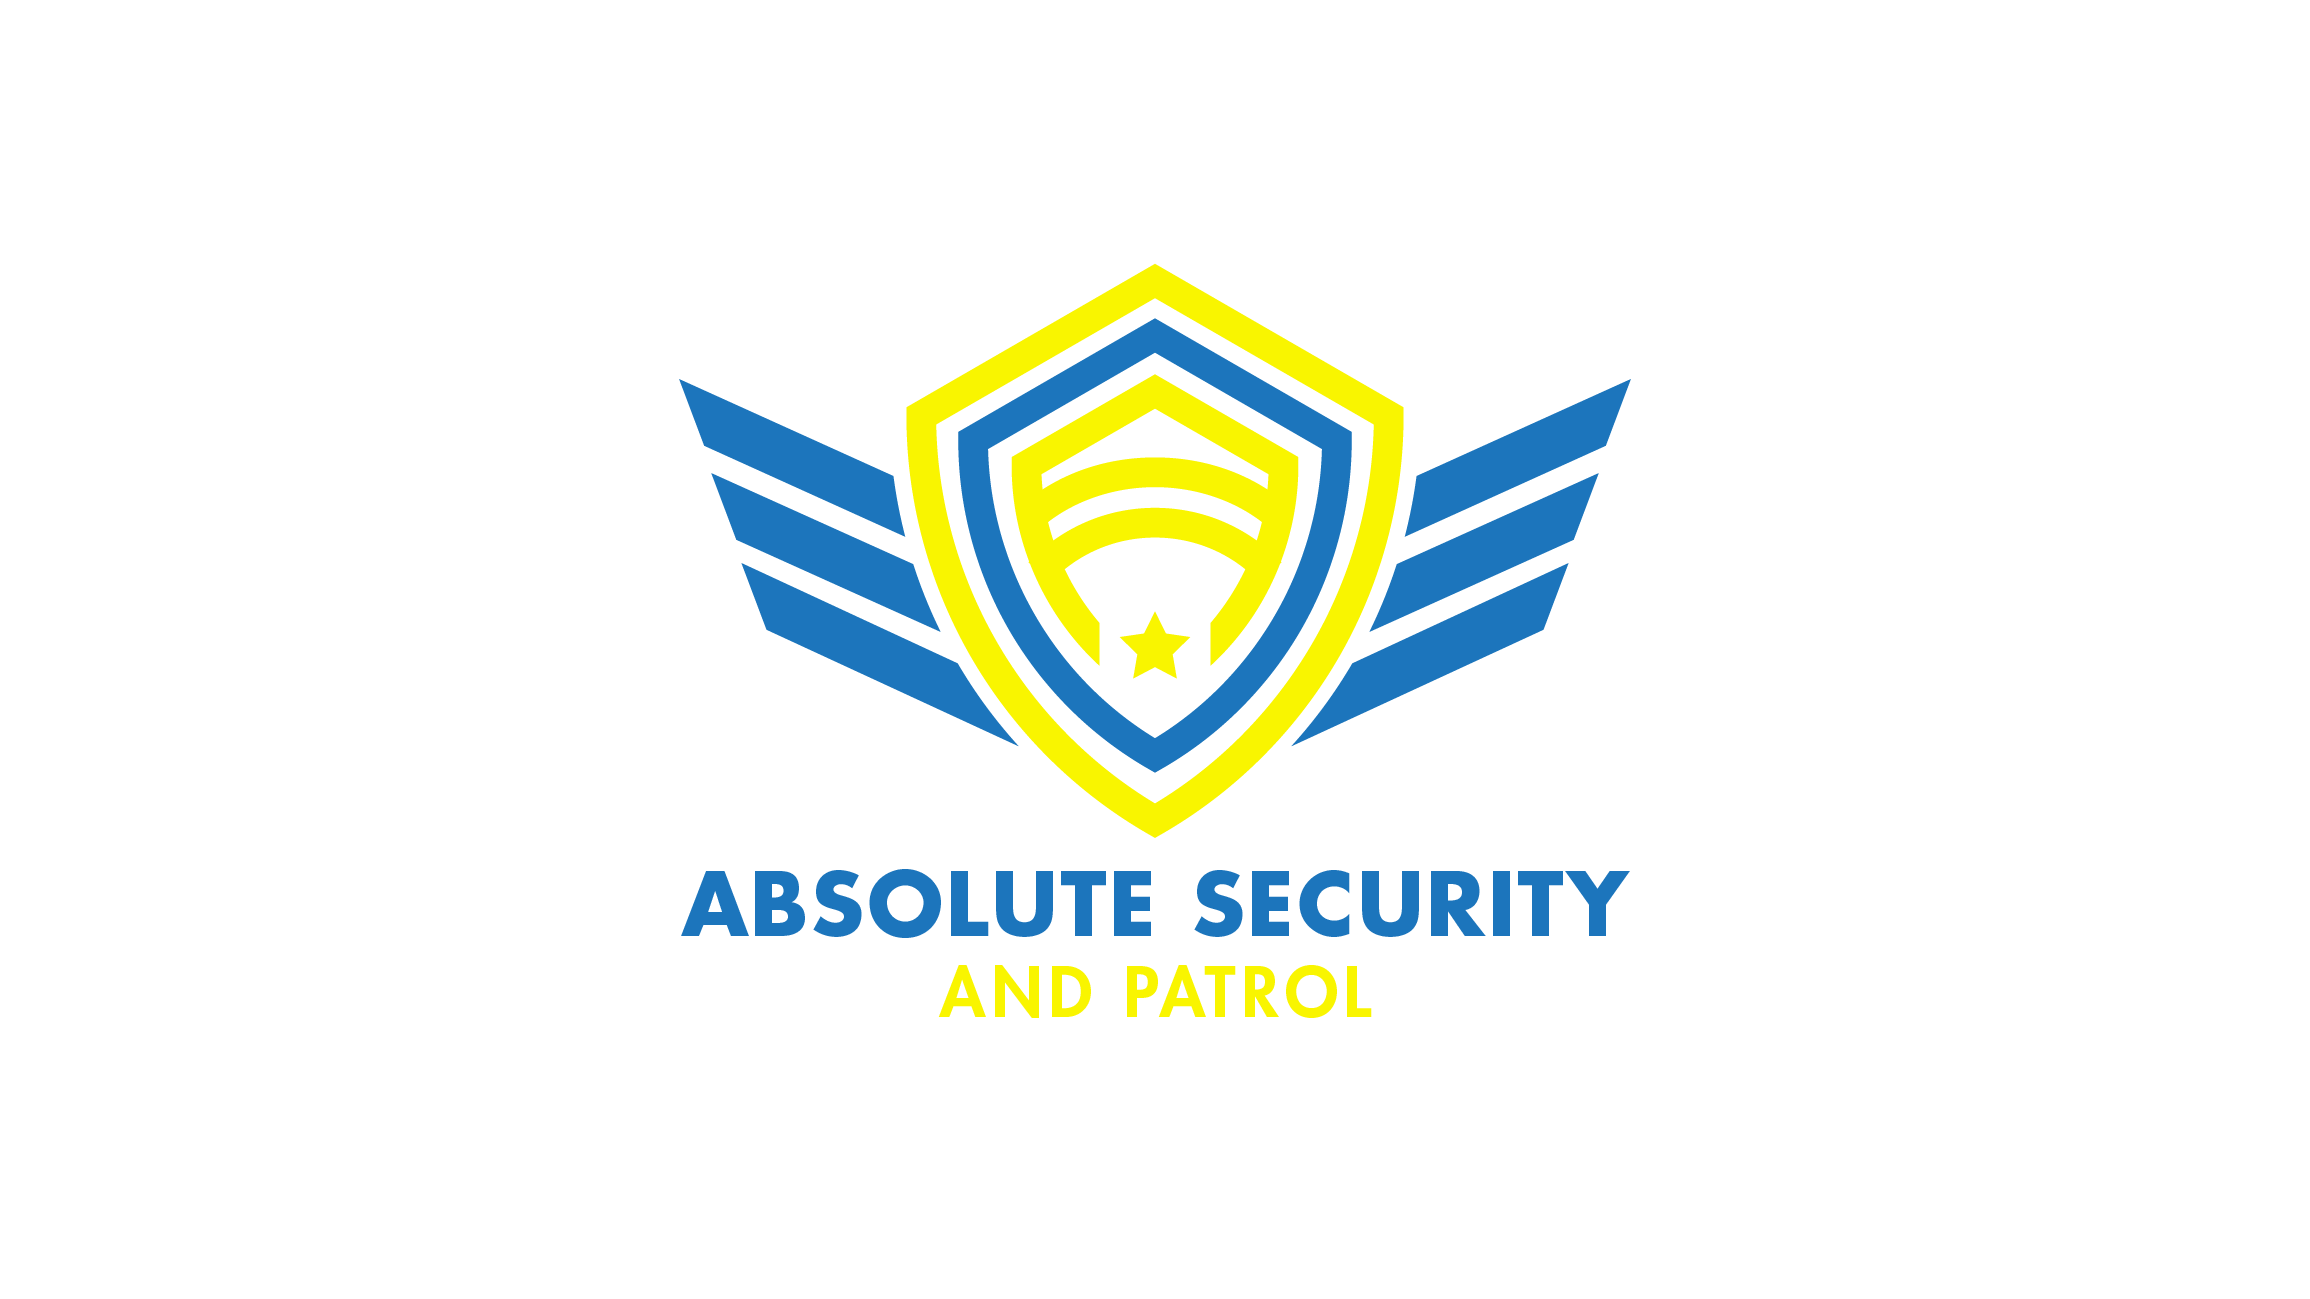 Texas Security Company, Absolute Security and Patrol, Announces New Service Areas in Arlington, Irving, Dallas, and Fort Worth